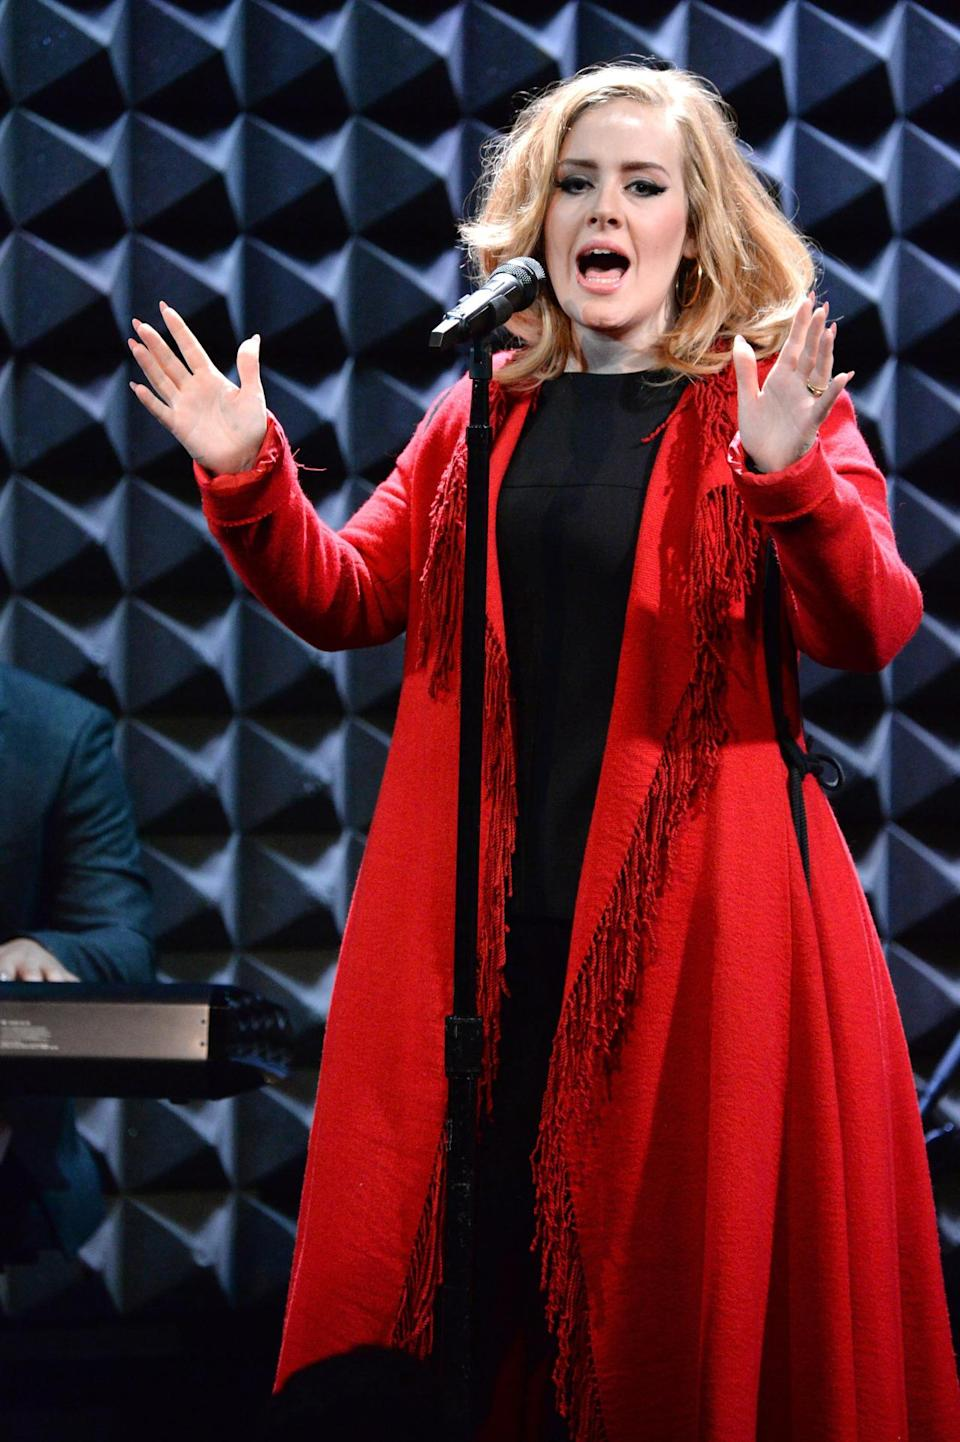 <p>Obviously a fan of fringe, Adele also wore it, although a bit more subtly, to celebrate the release of her new album during a performance to small audience in New York. Wearing a black shirt and pants, she added flair and fun with a red robe coat. </p>